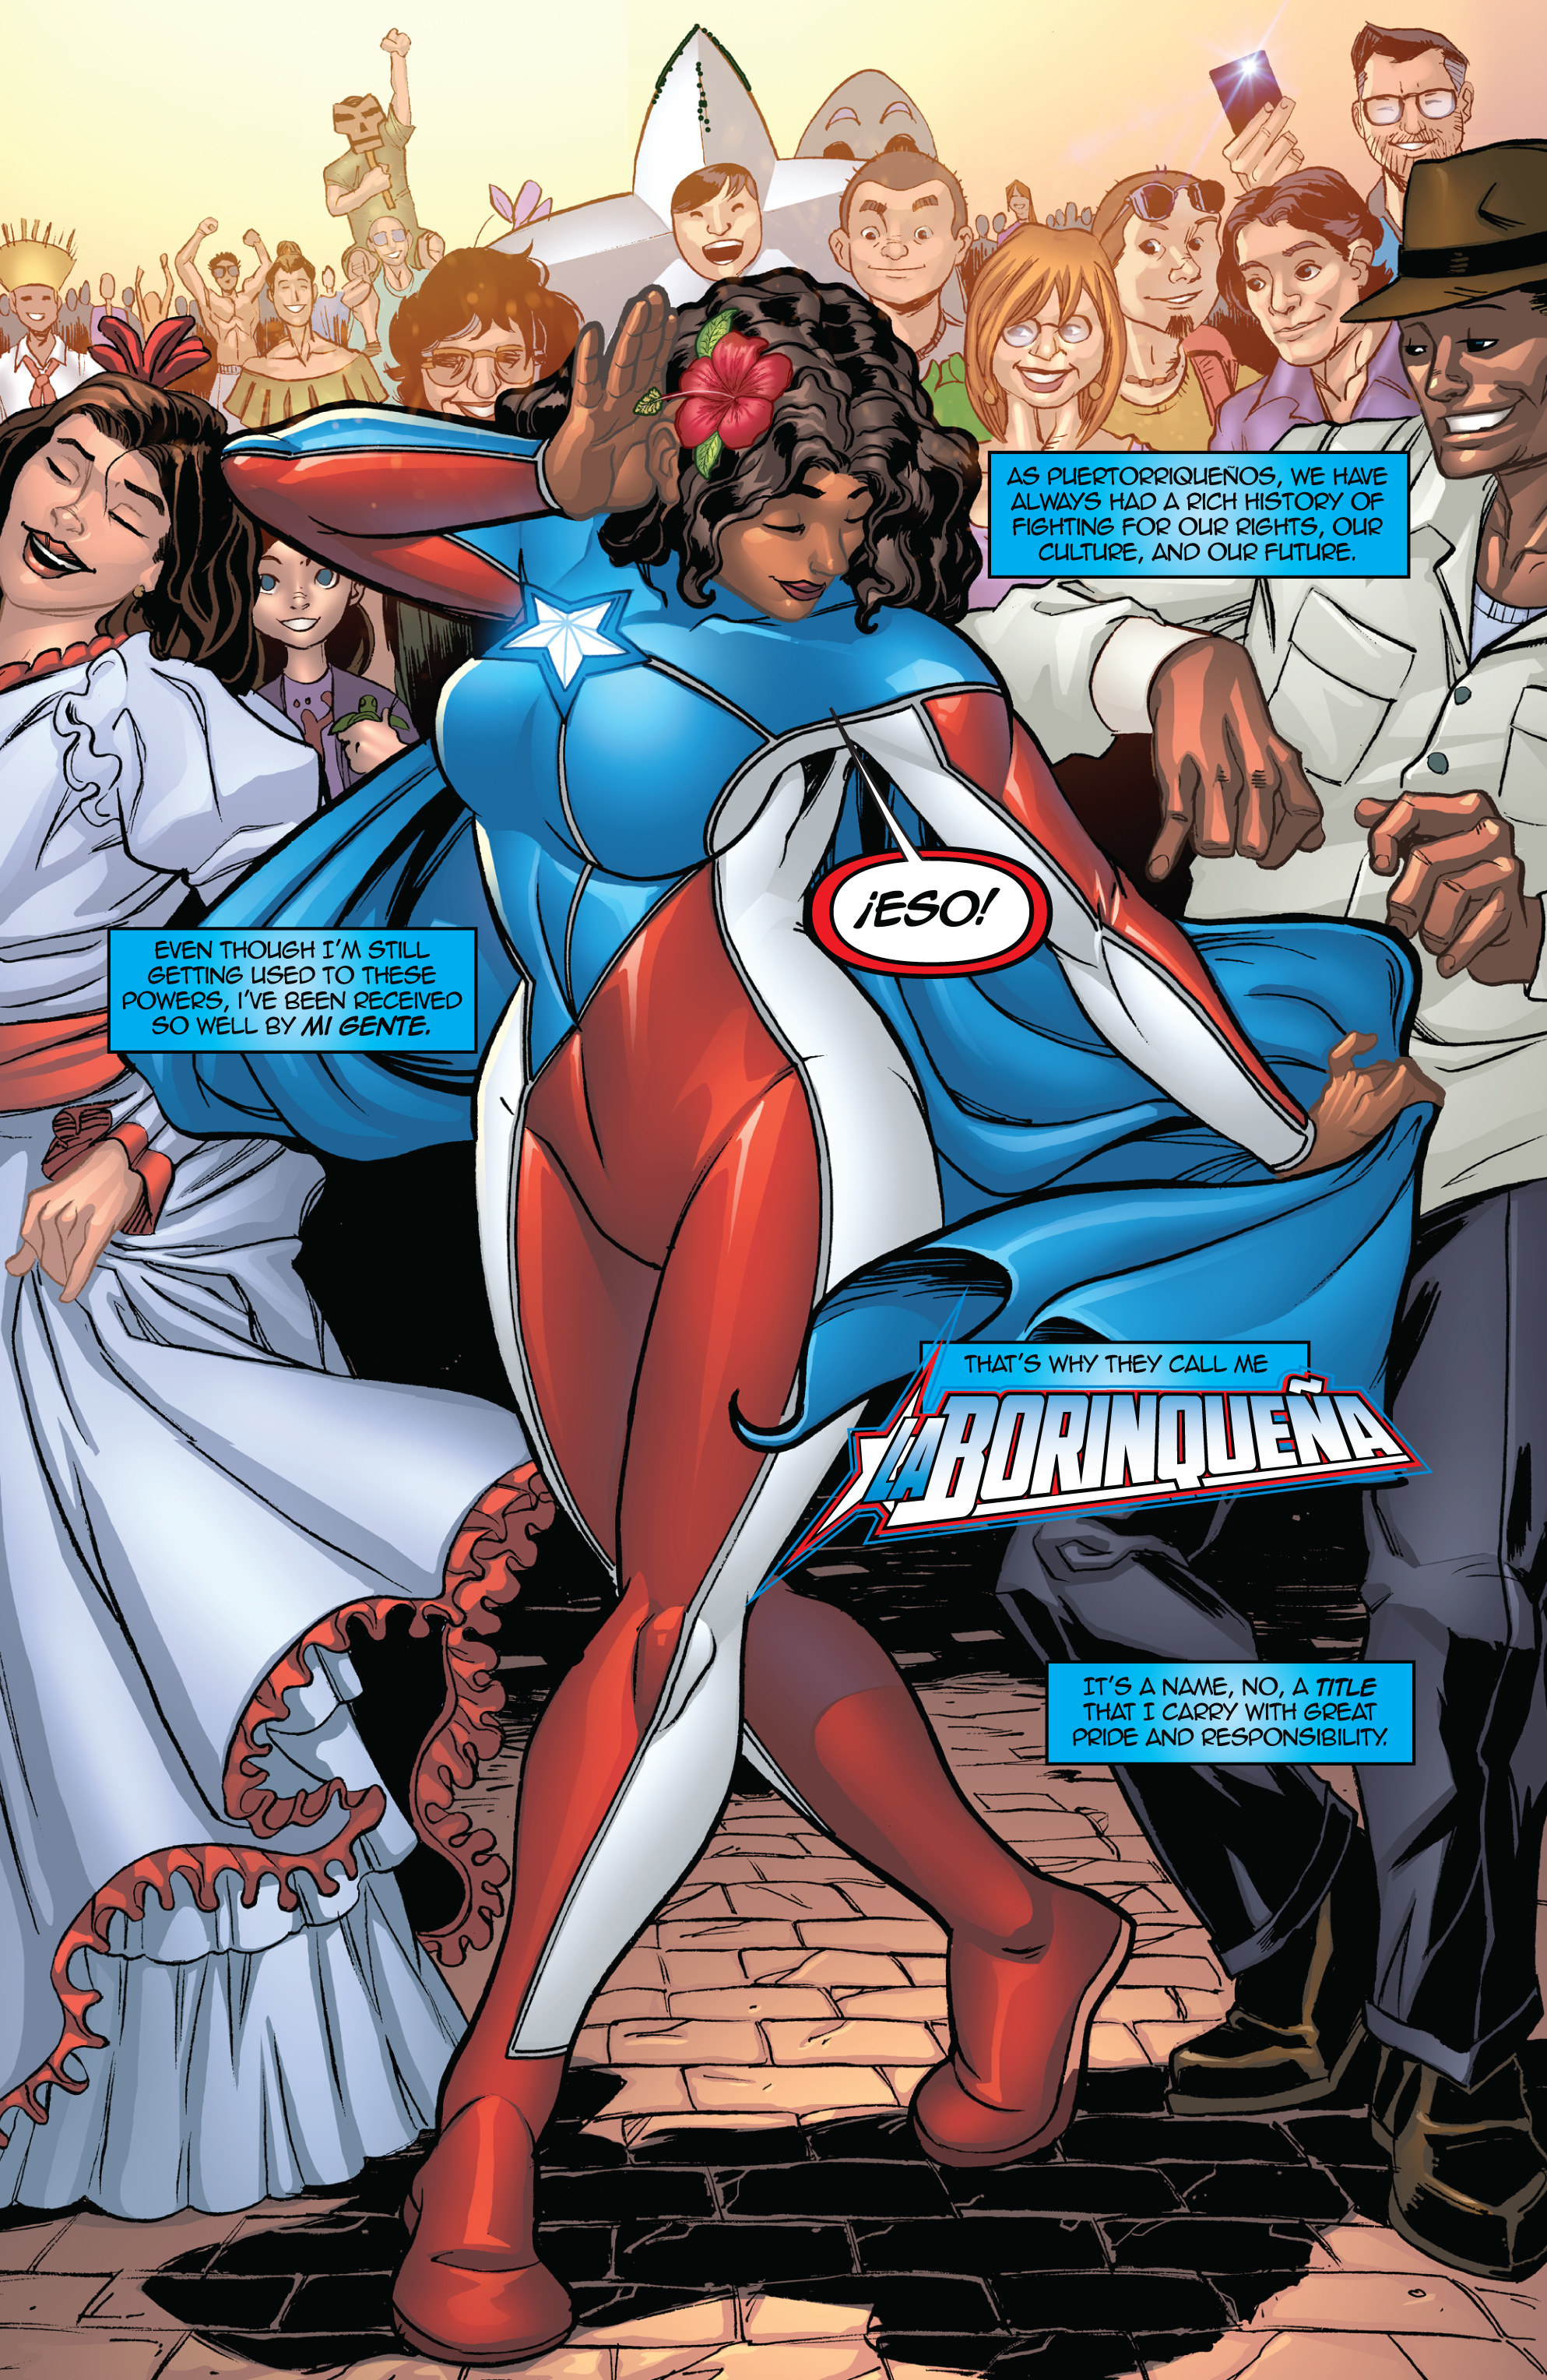 Comic illustration of character named Marisol Rios De La Luz dancing with her community in Puerto Rico.